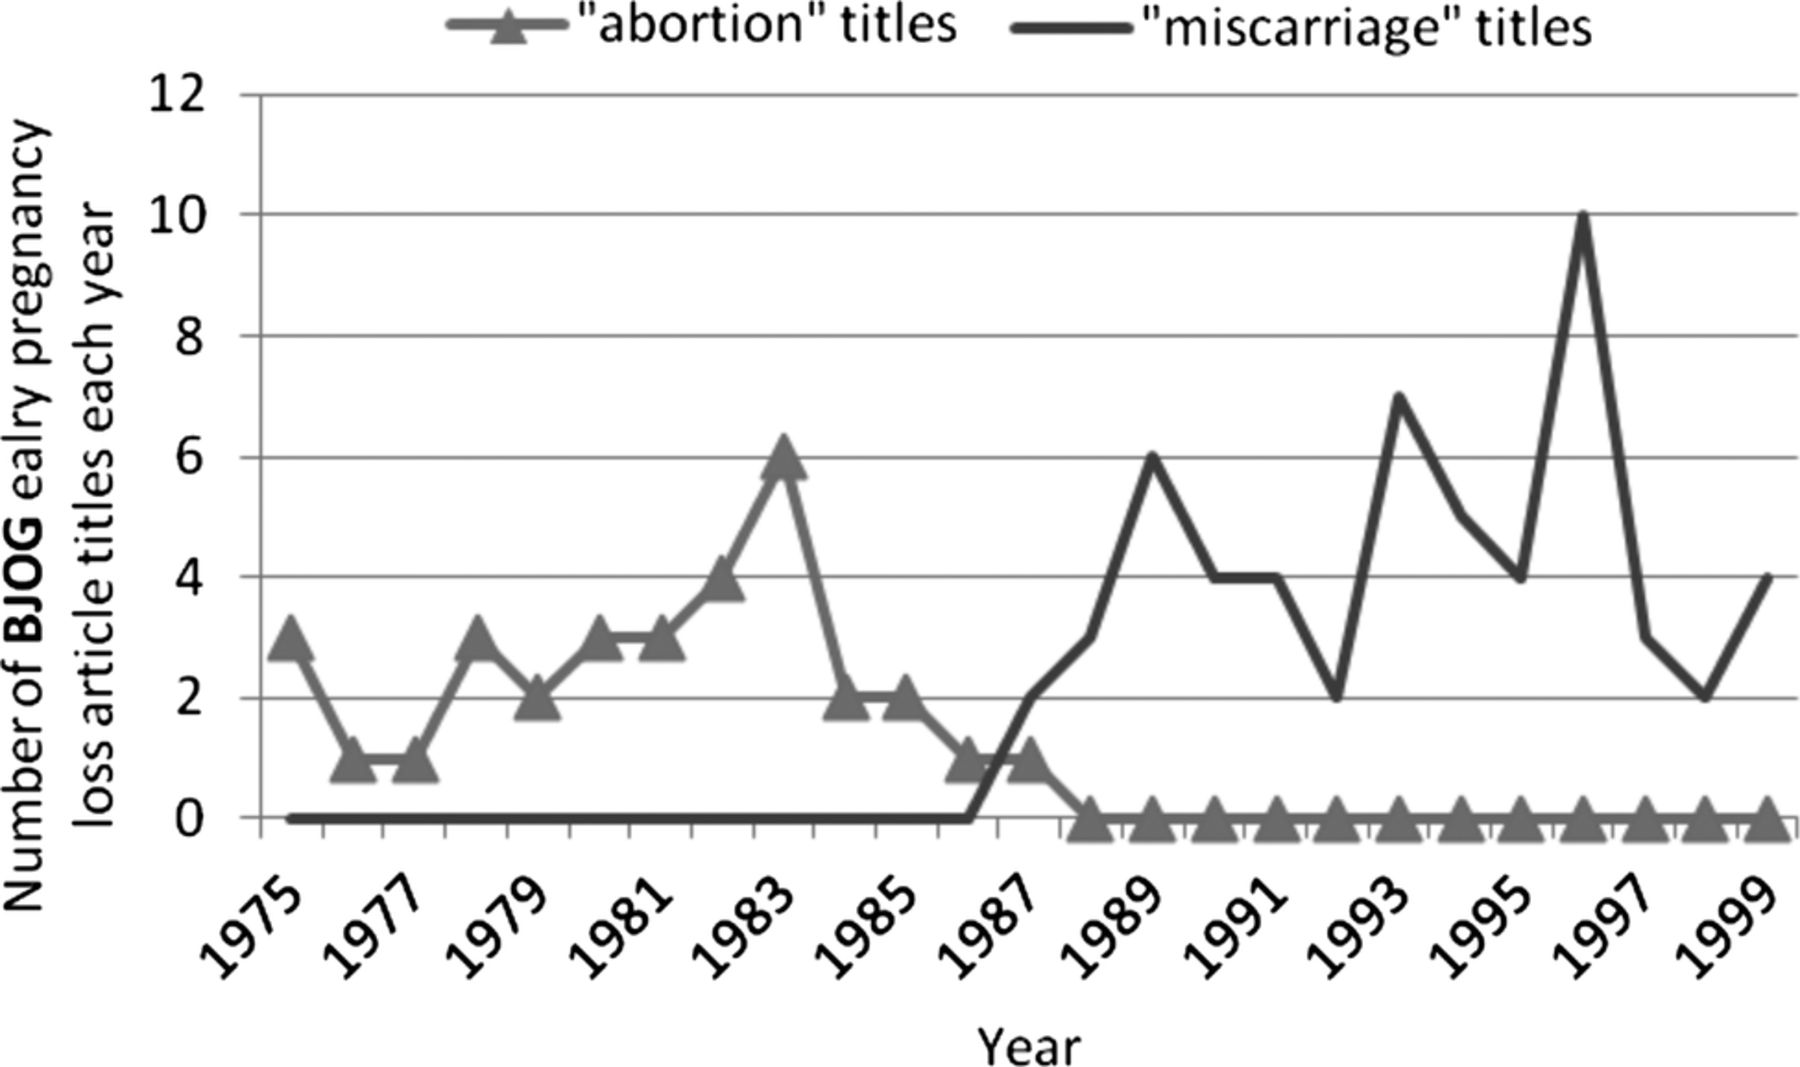 Are fears justified? What are miscarriages to different people? 15